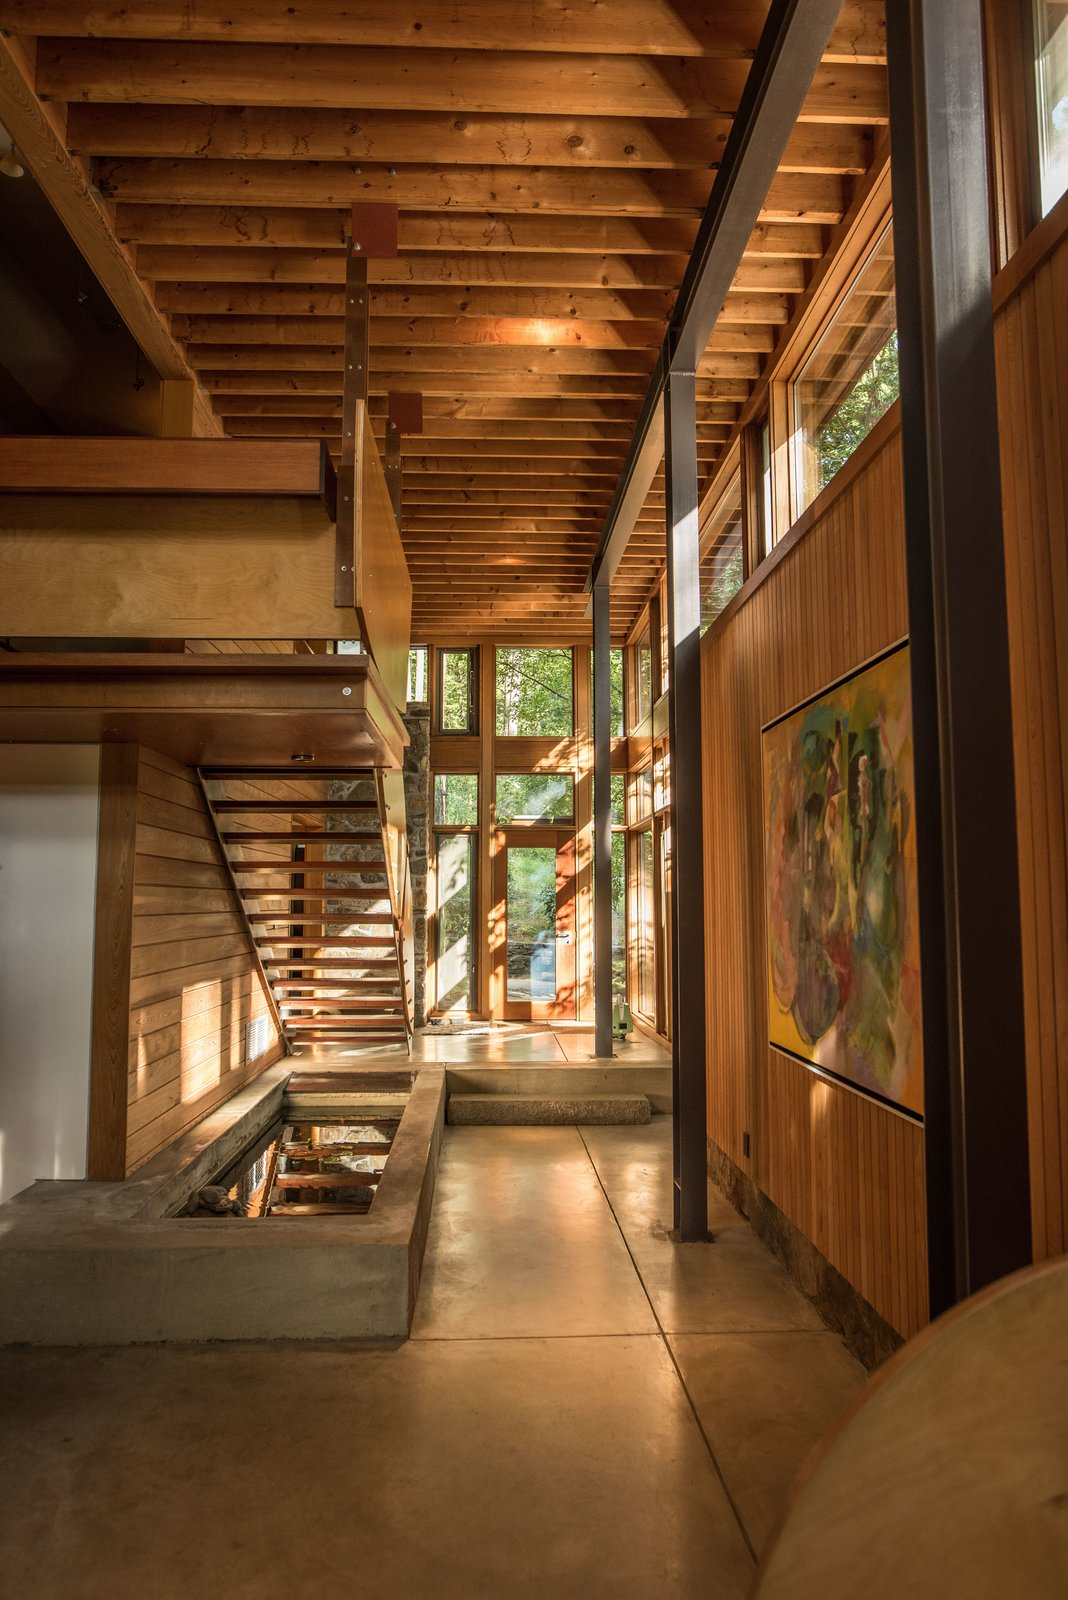 Hallway and Concrete Floor The new spaces recall the original design with their use of natural materials like wood and stone.  Photo 3 of 4 in This Updated Breuer House Could Be Yours for a Cool $2.3 Million